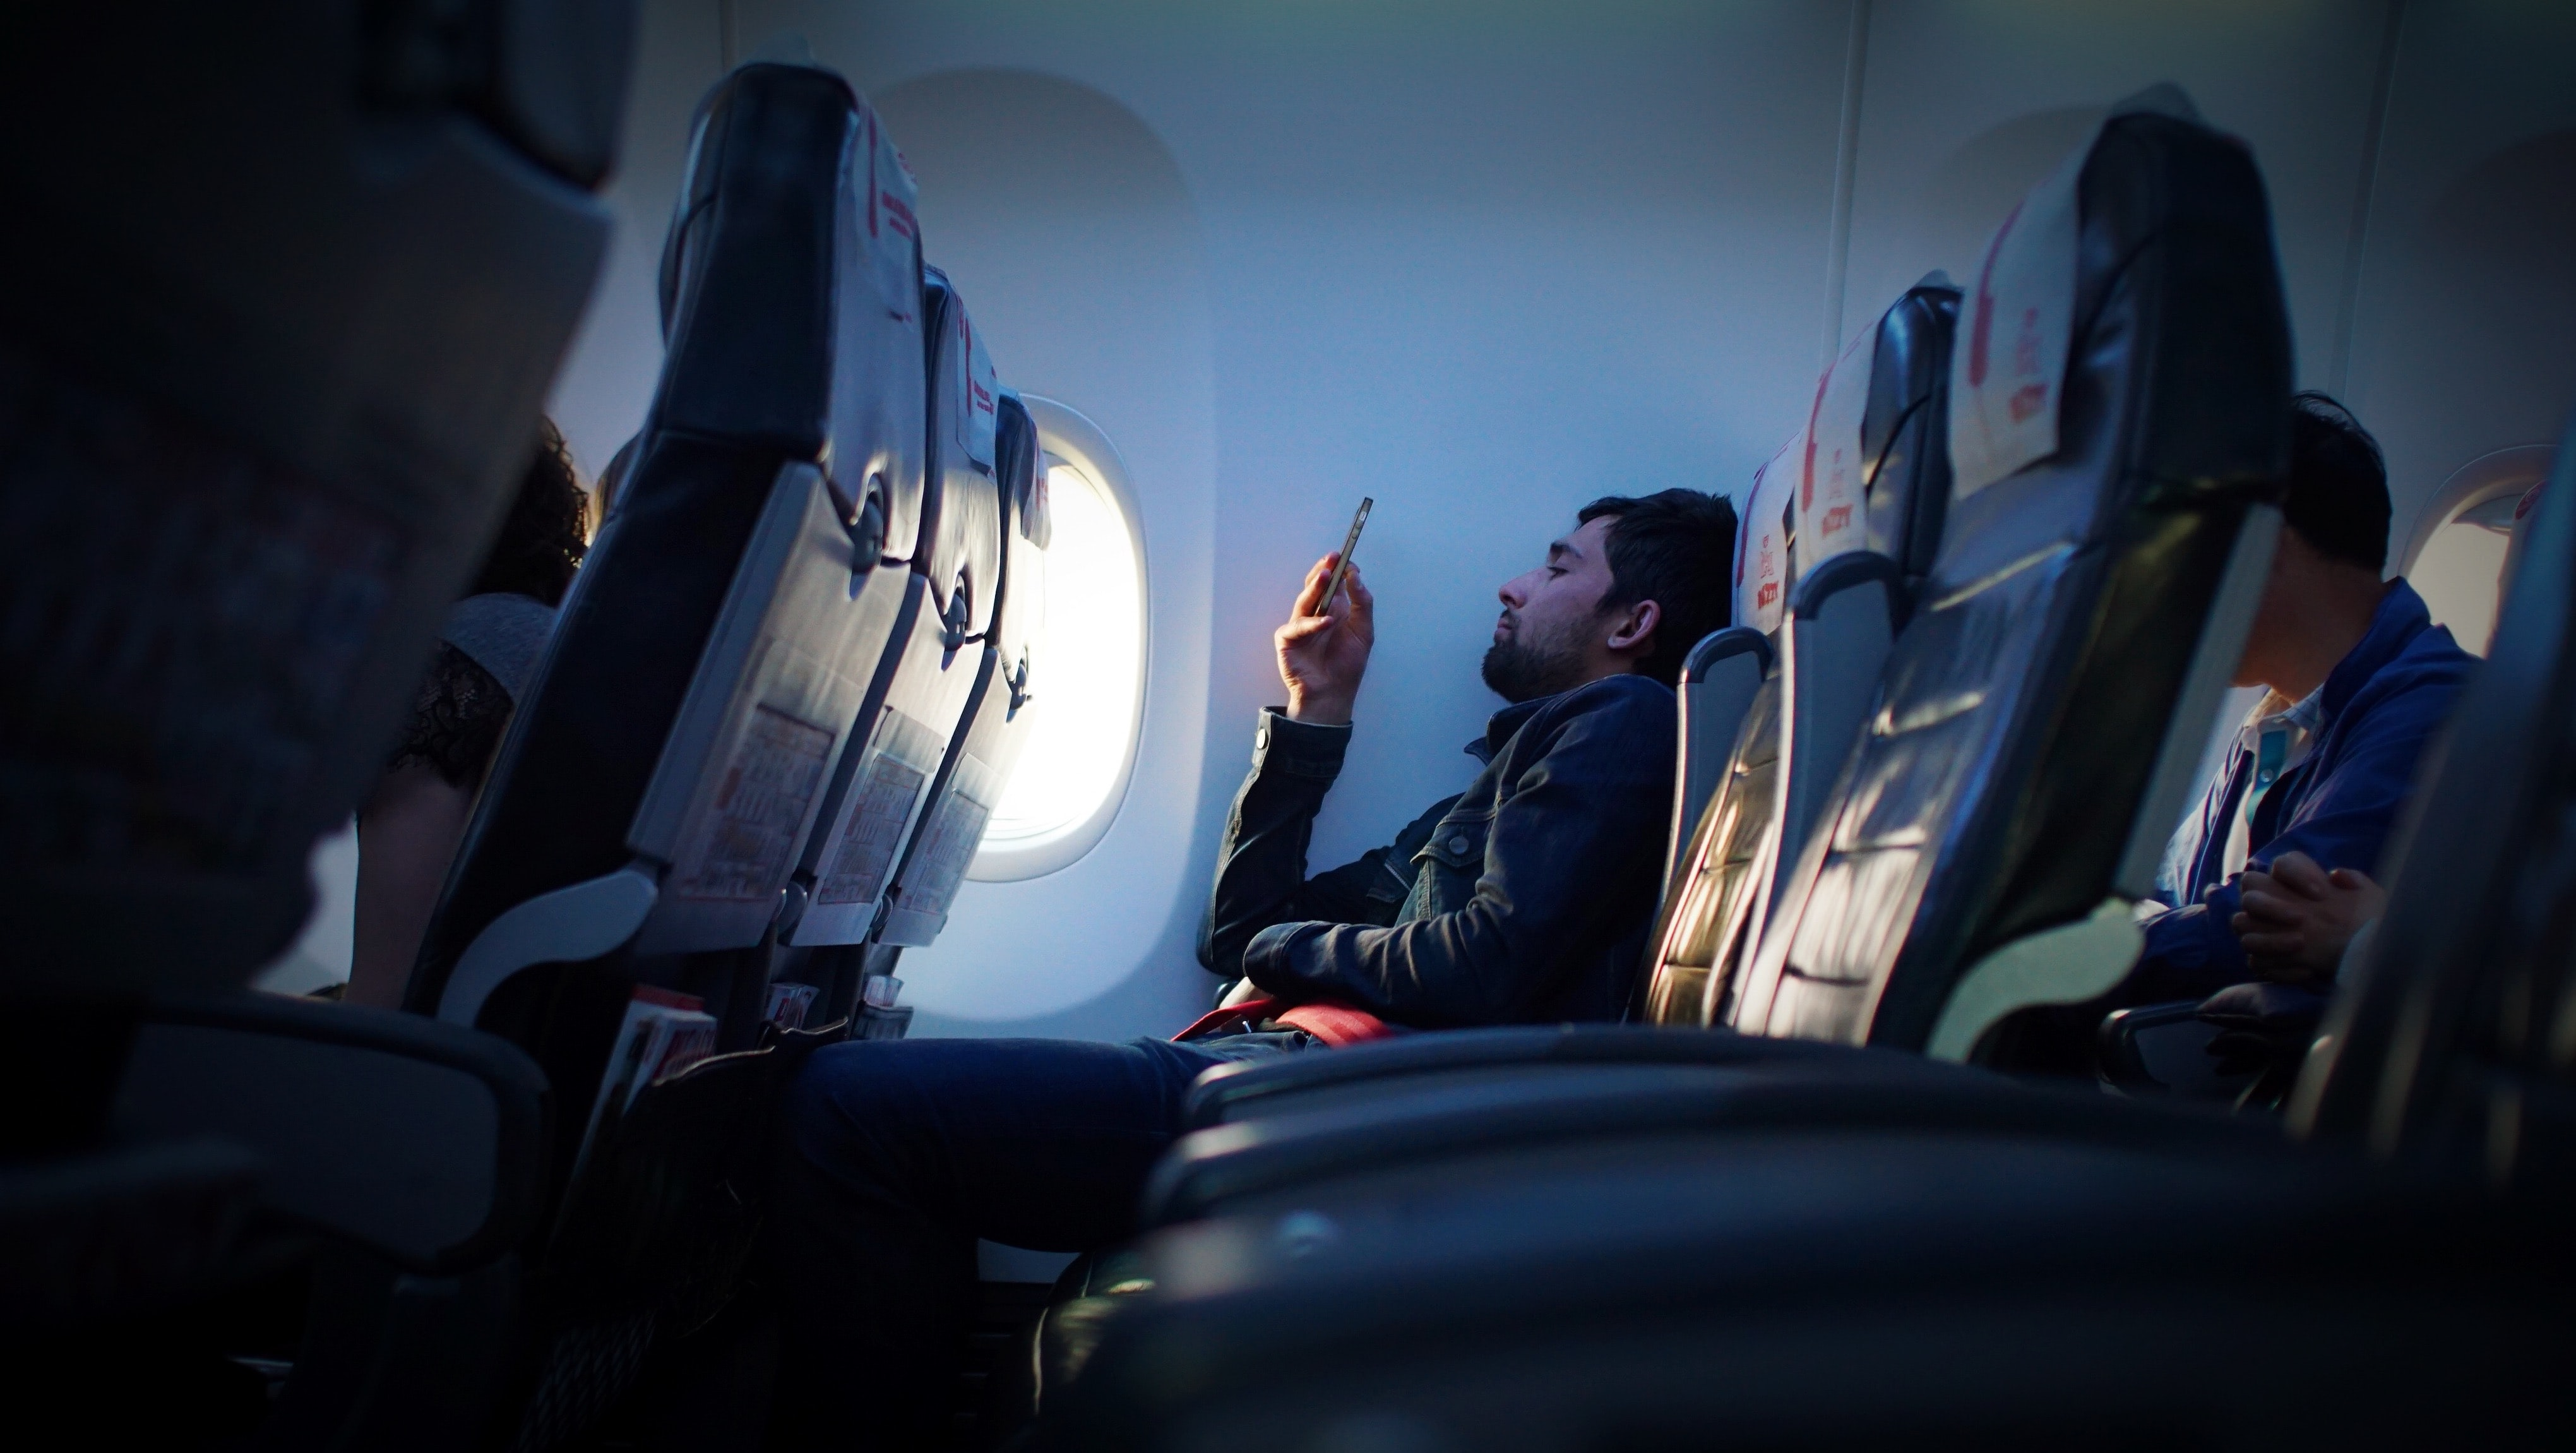 person sitting inside airplane using smartphone